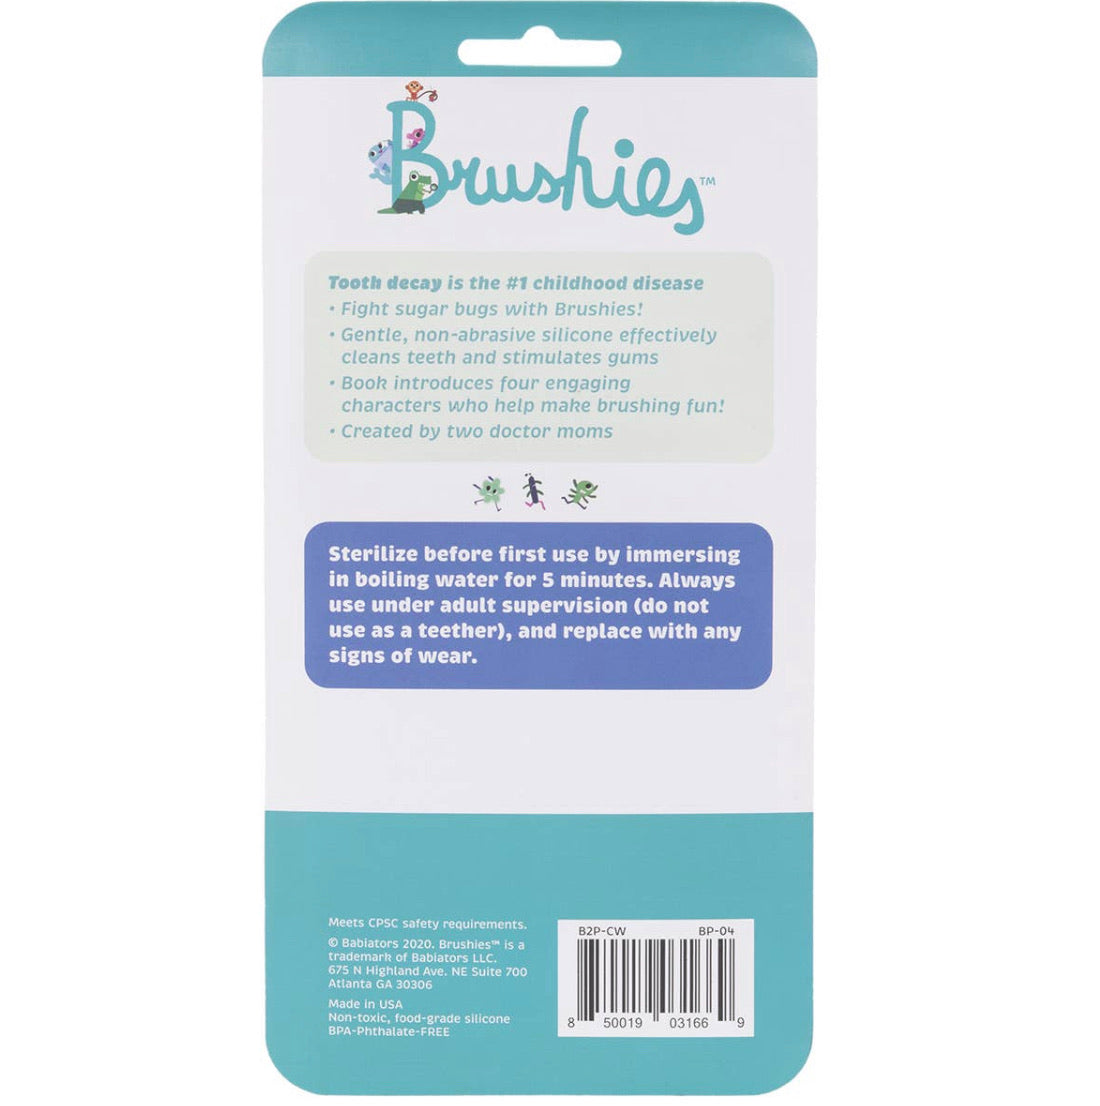 The Brushies Finger Puppet Toothbrush and Bonus Board Book